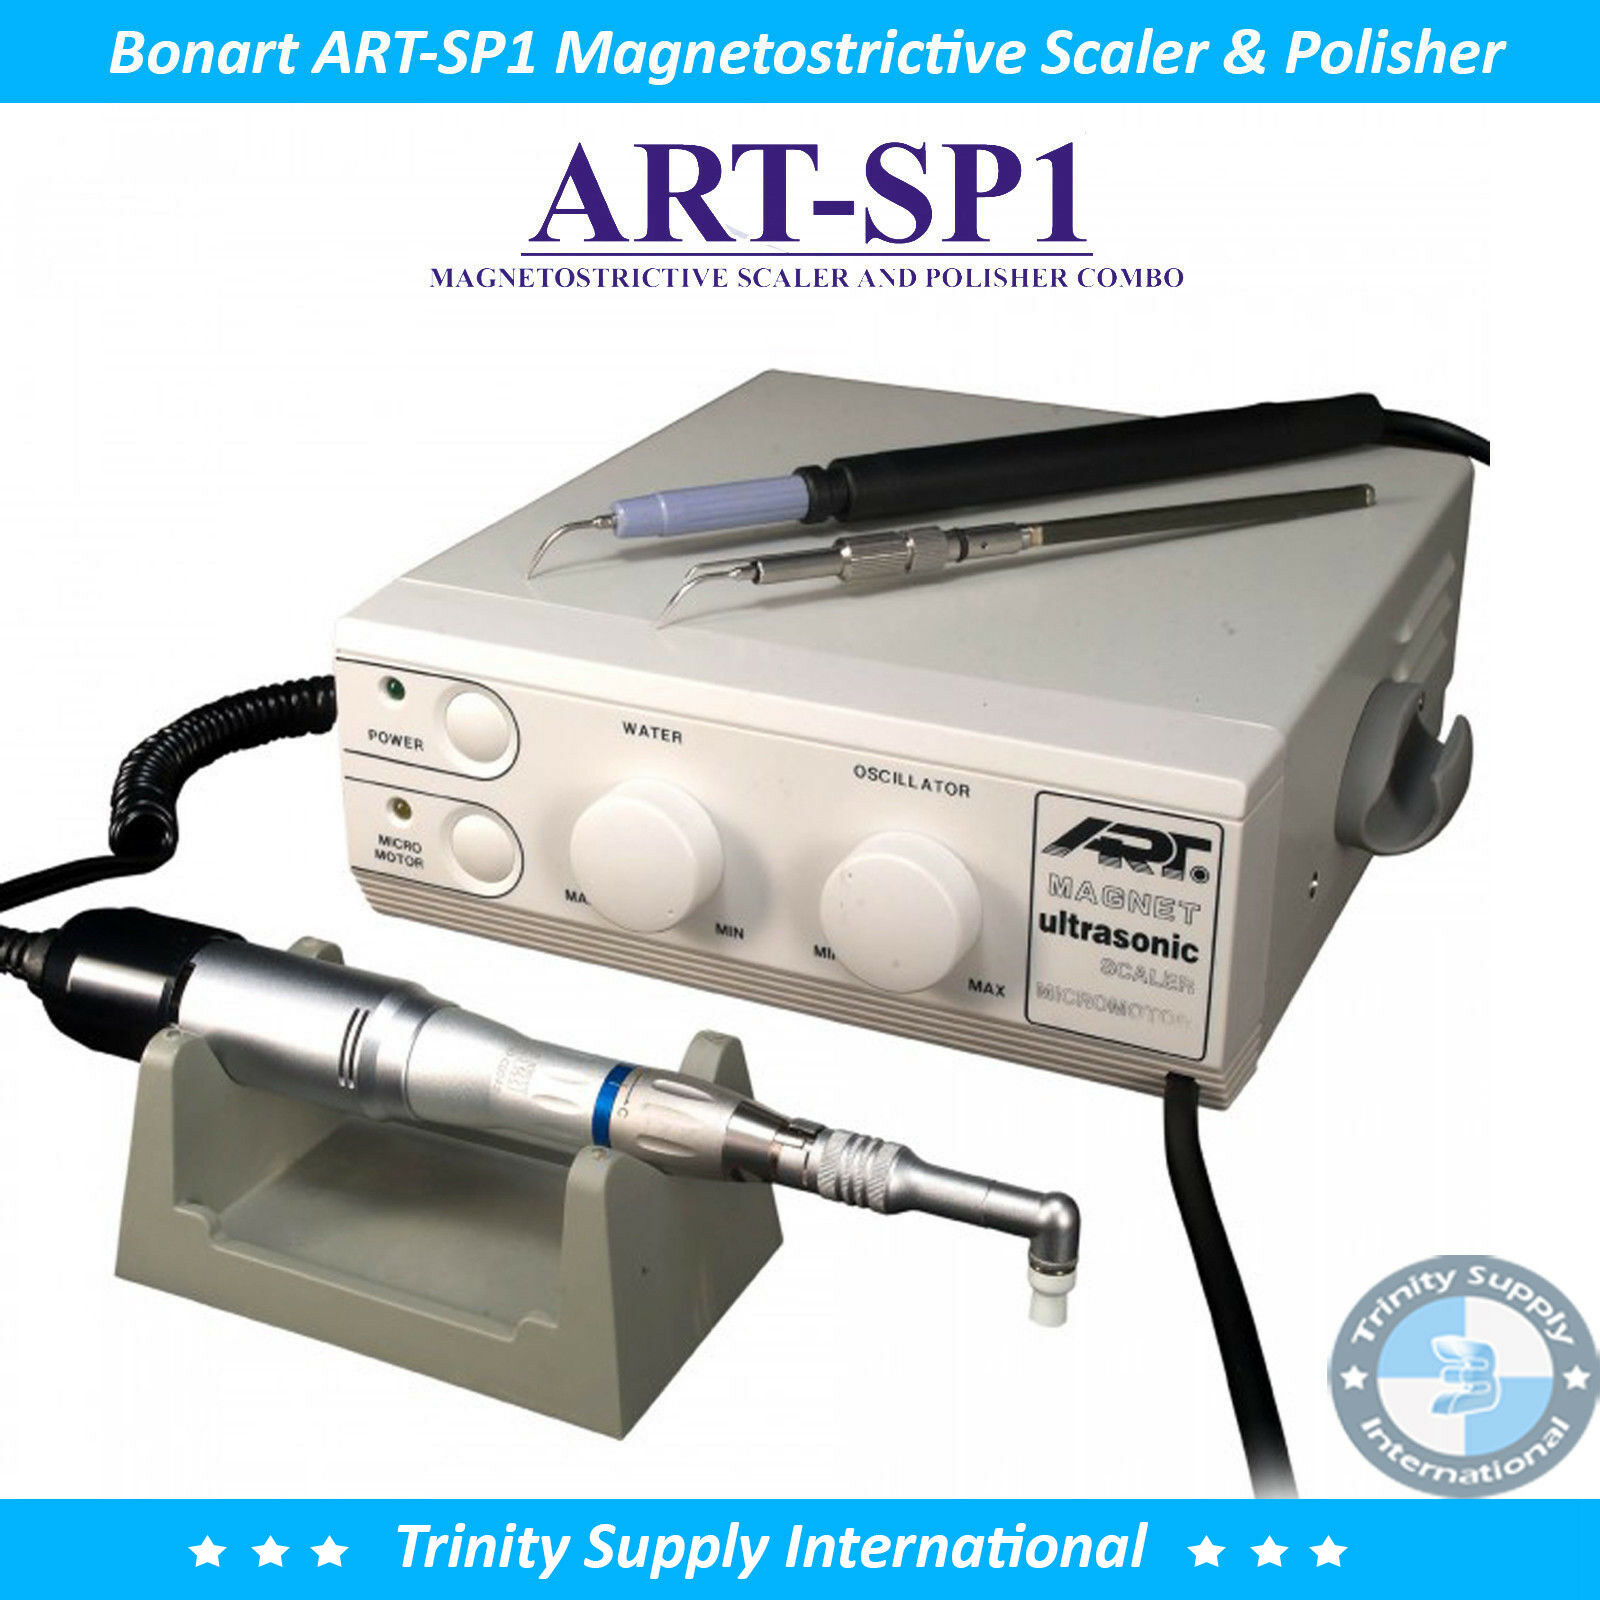 BONART ART-SP1 MAGNETOSTRICTIVE SCALER AND POLISHER COMBO HEAVY-DUTY FOR VET NEW